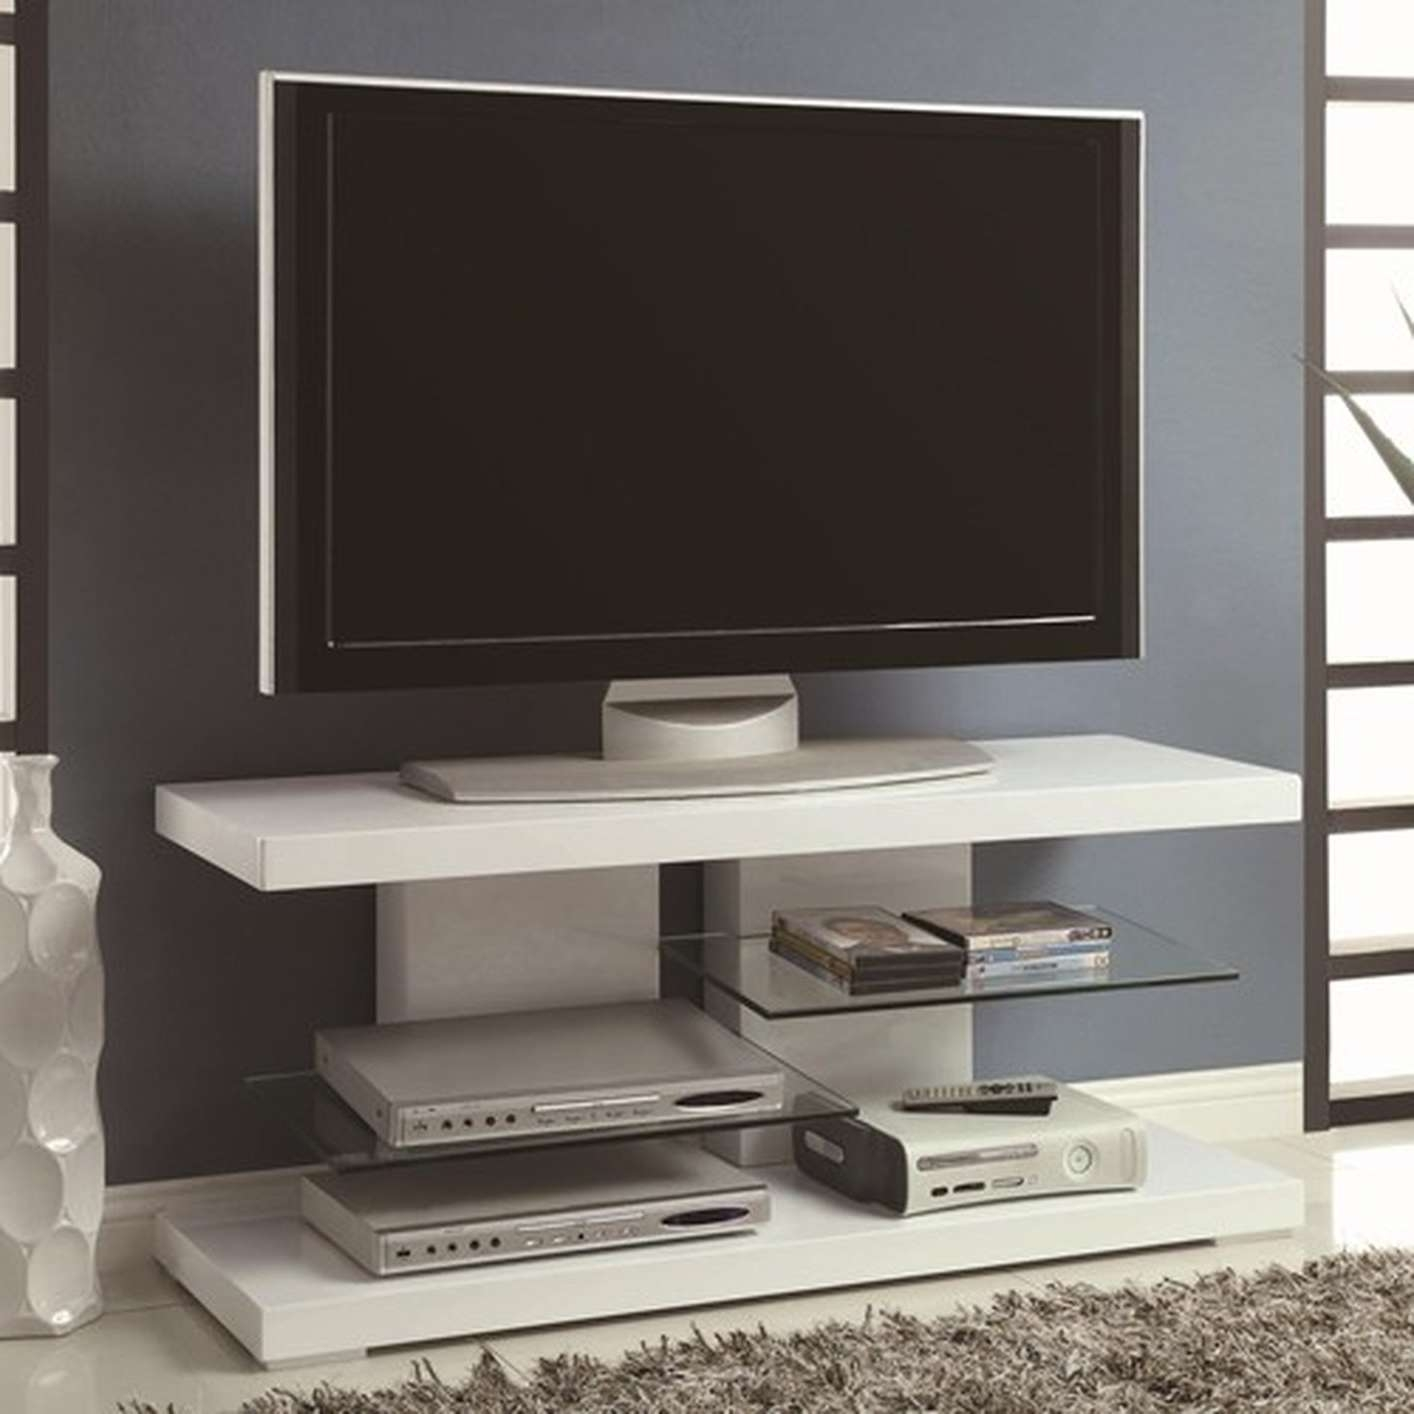 White Glass Tv Stand – Steal A Sofa Furniture Outlet Los Angeles Ca With Regard To Gloss White Tv Stands (View 4 of 15)